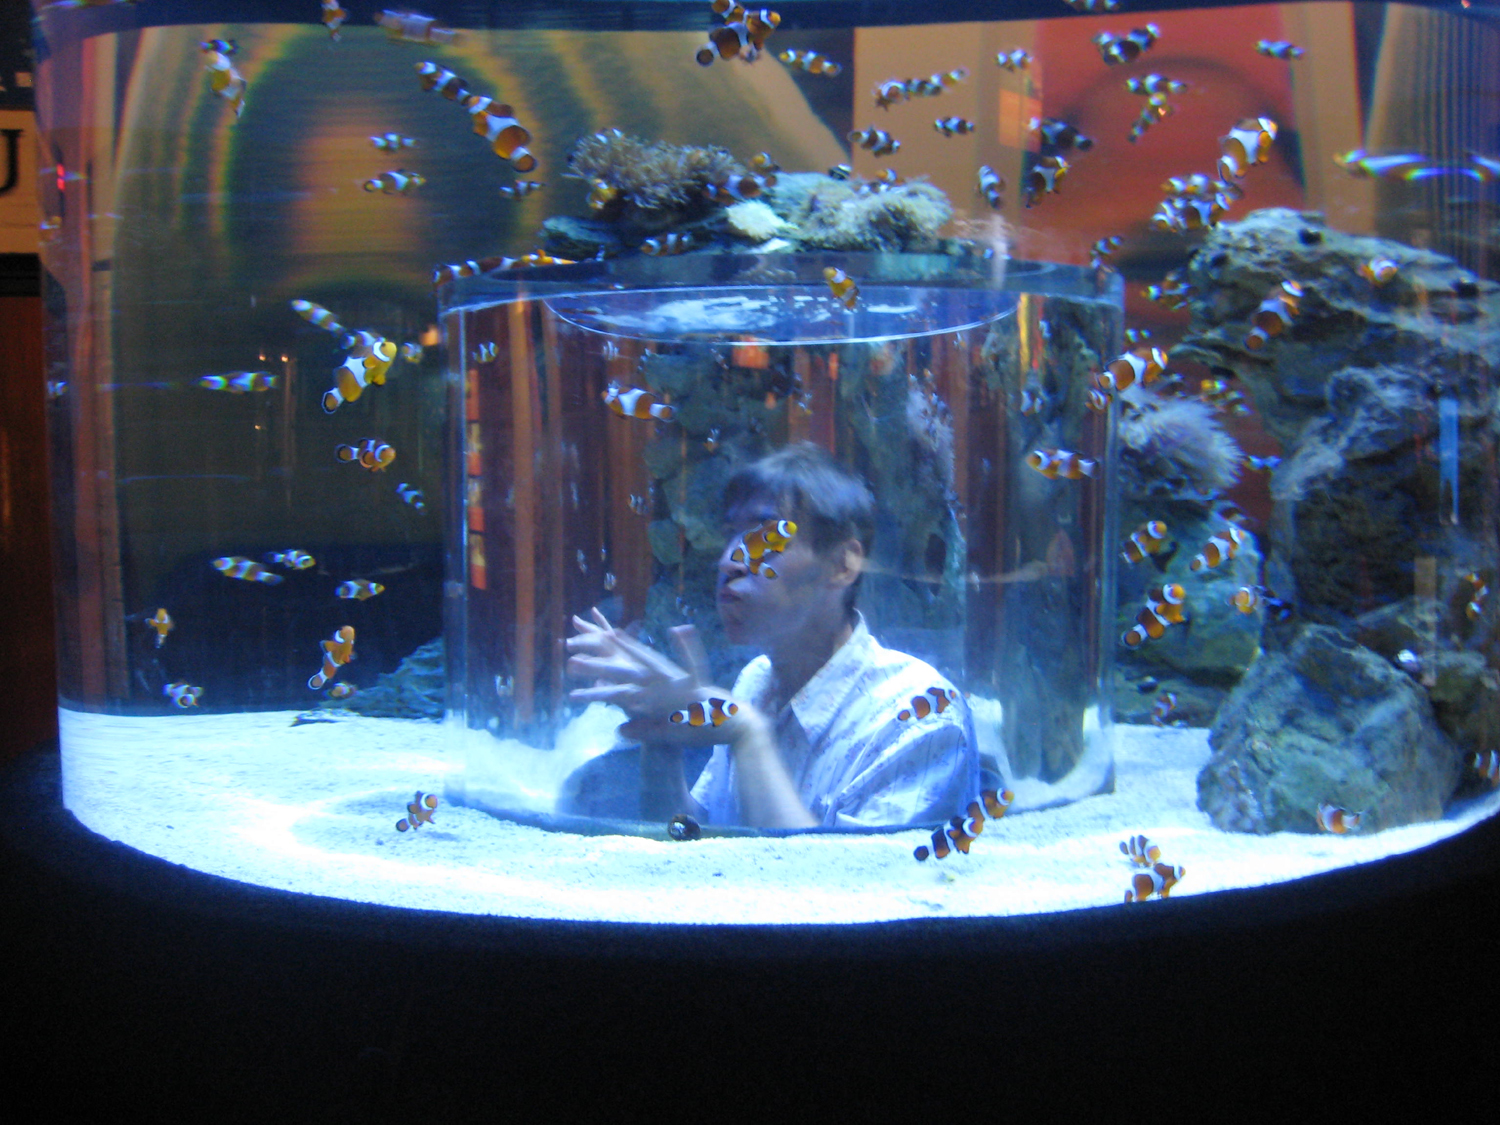 Freshwater aquarium fish cape town - After I Had Dried Off And Been Thrown Out Of The Aquarium We Set Off For Table Mountain Hoping To Get Up There For Sunset The Sky Was Still Clear And The